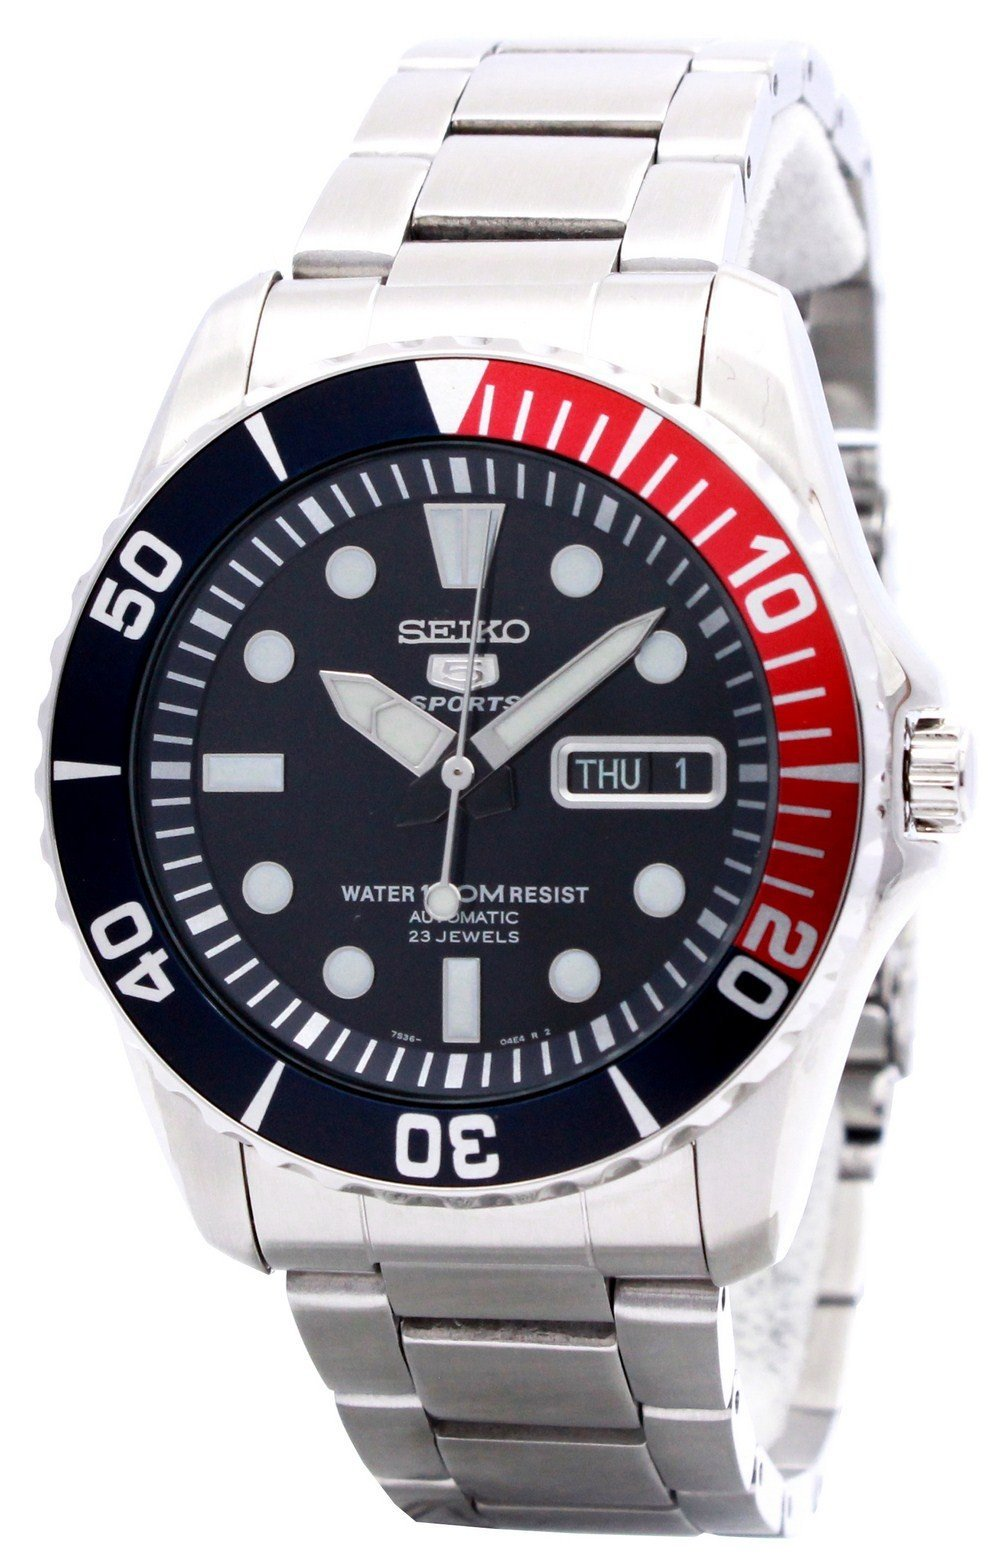 Seiko Automatic Divers 23 Jewels 100m Watch SNZF15 SNZF15K1 SNZF15K Men's Watch